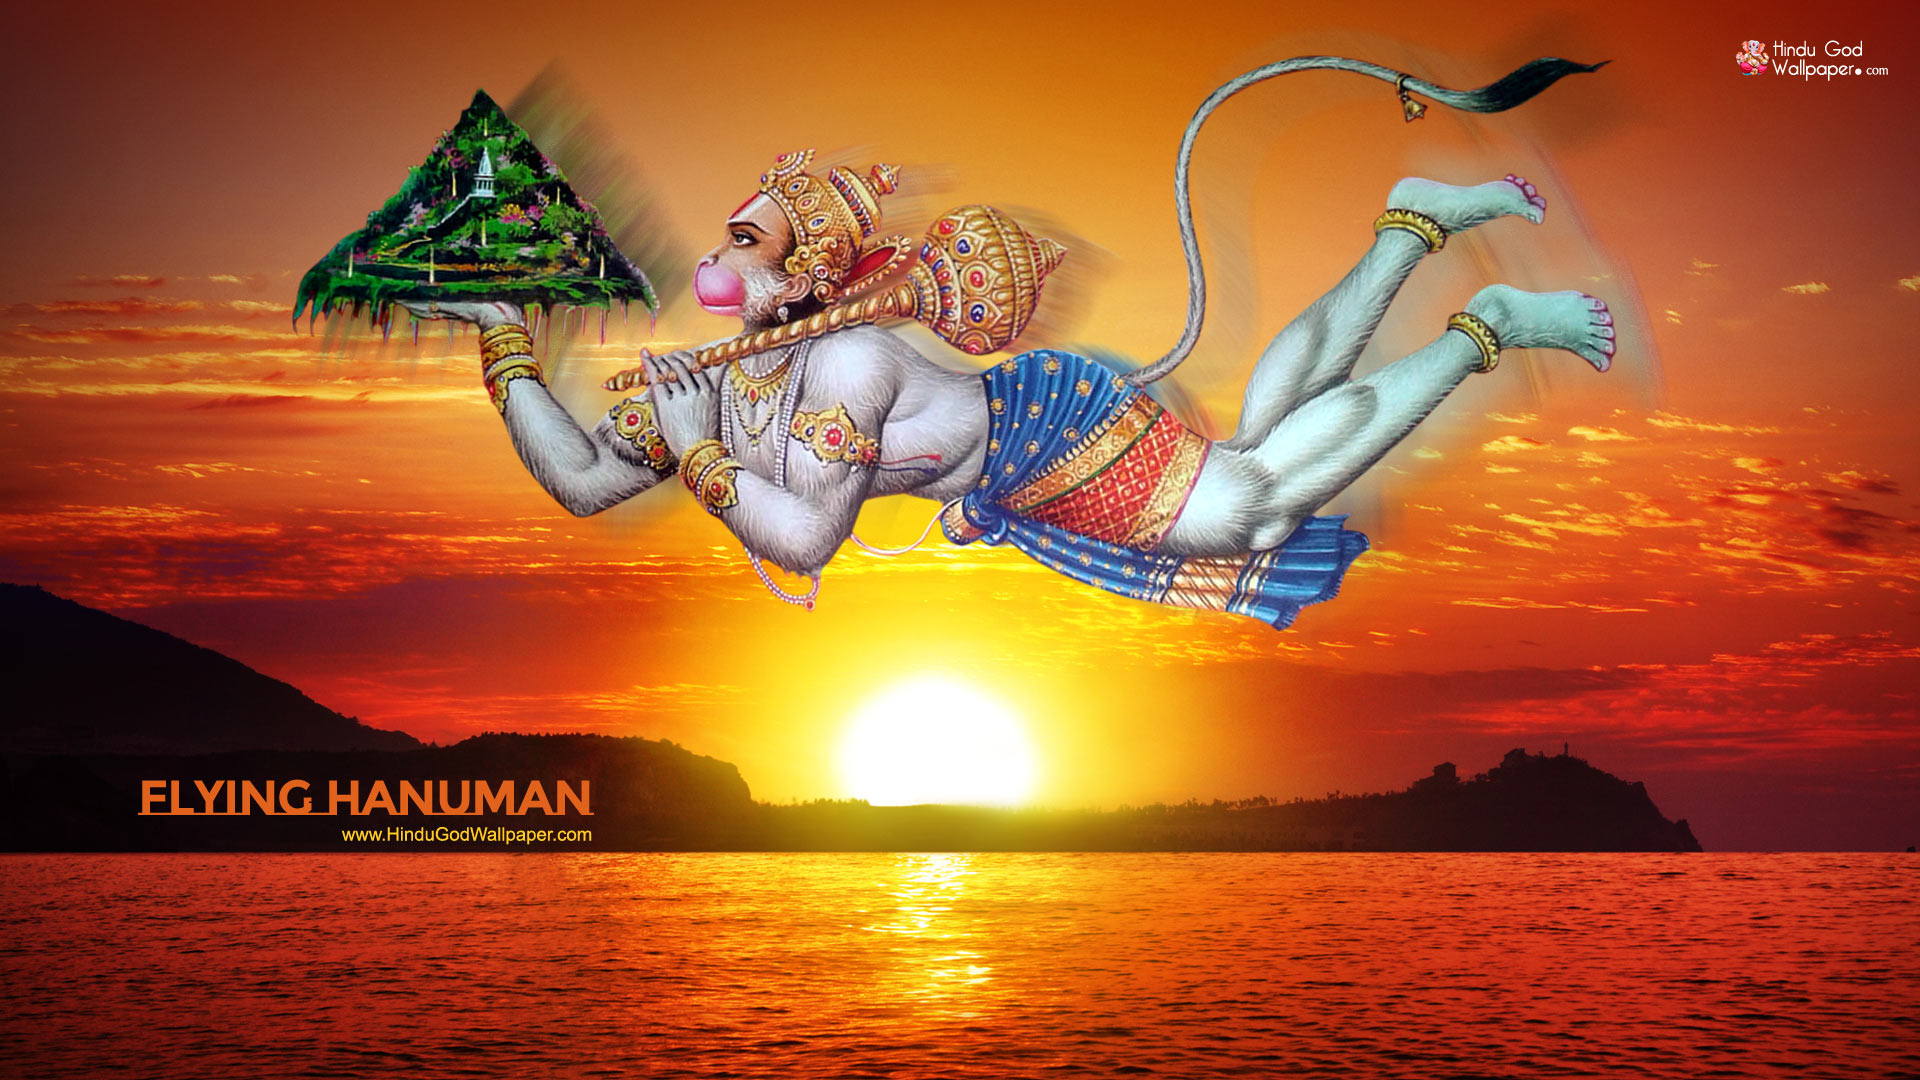 1080p Flying Hanuman Hd Wallpaper 1920x1080 Free Download